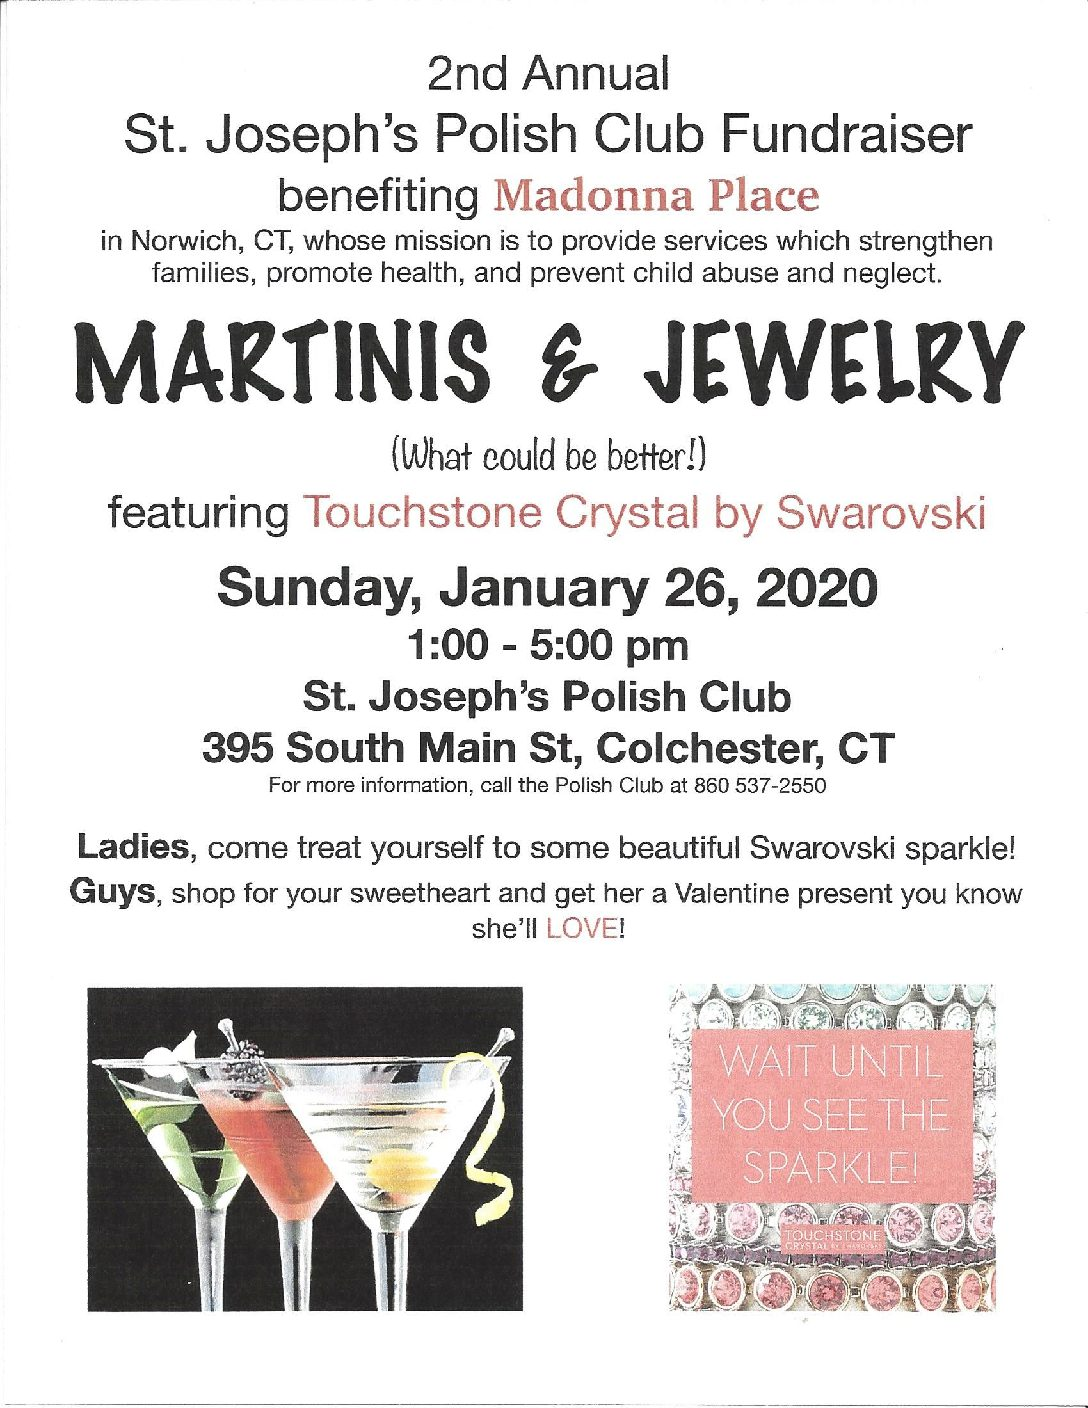 St. Joseph's Polish Club (featuring Touchstone Crystal by Swarovski) Jewelry Fundraiser to benefit Madonna Place